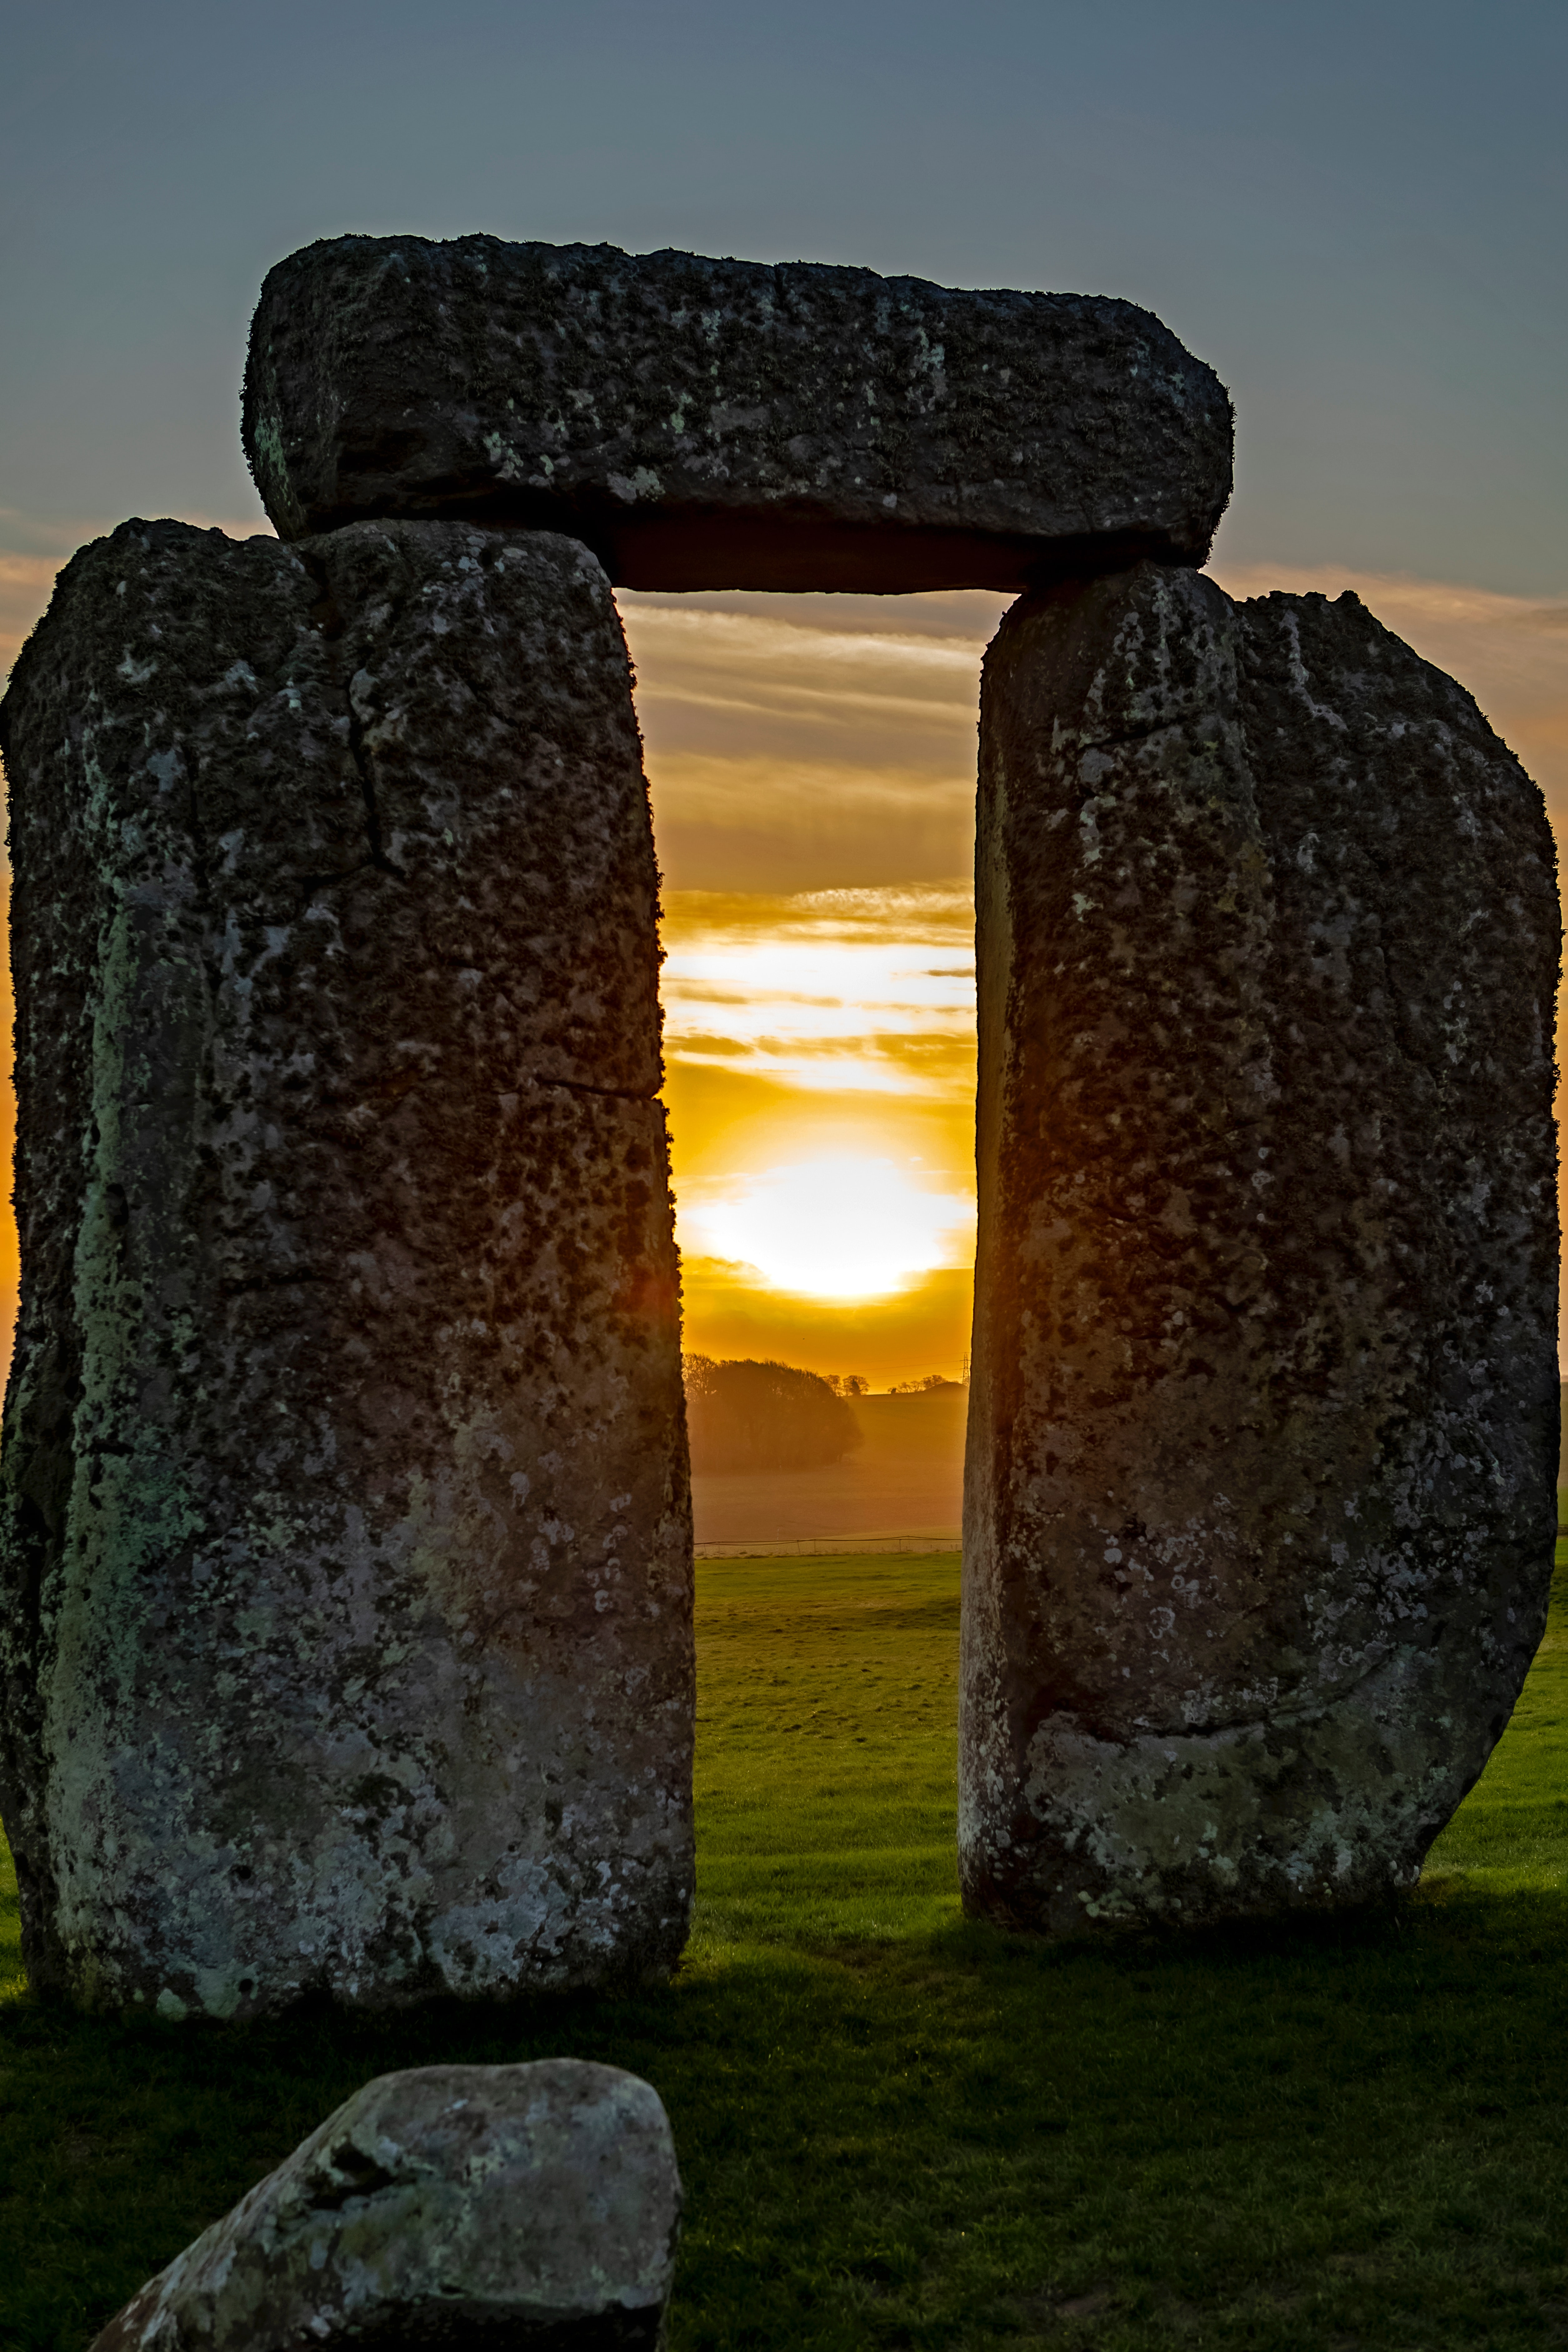 66599 download wallpaper Nature, Stones, Megalith, Sunset, Stonehenge, England screensavers and pictures for free